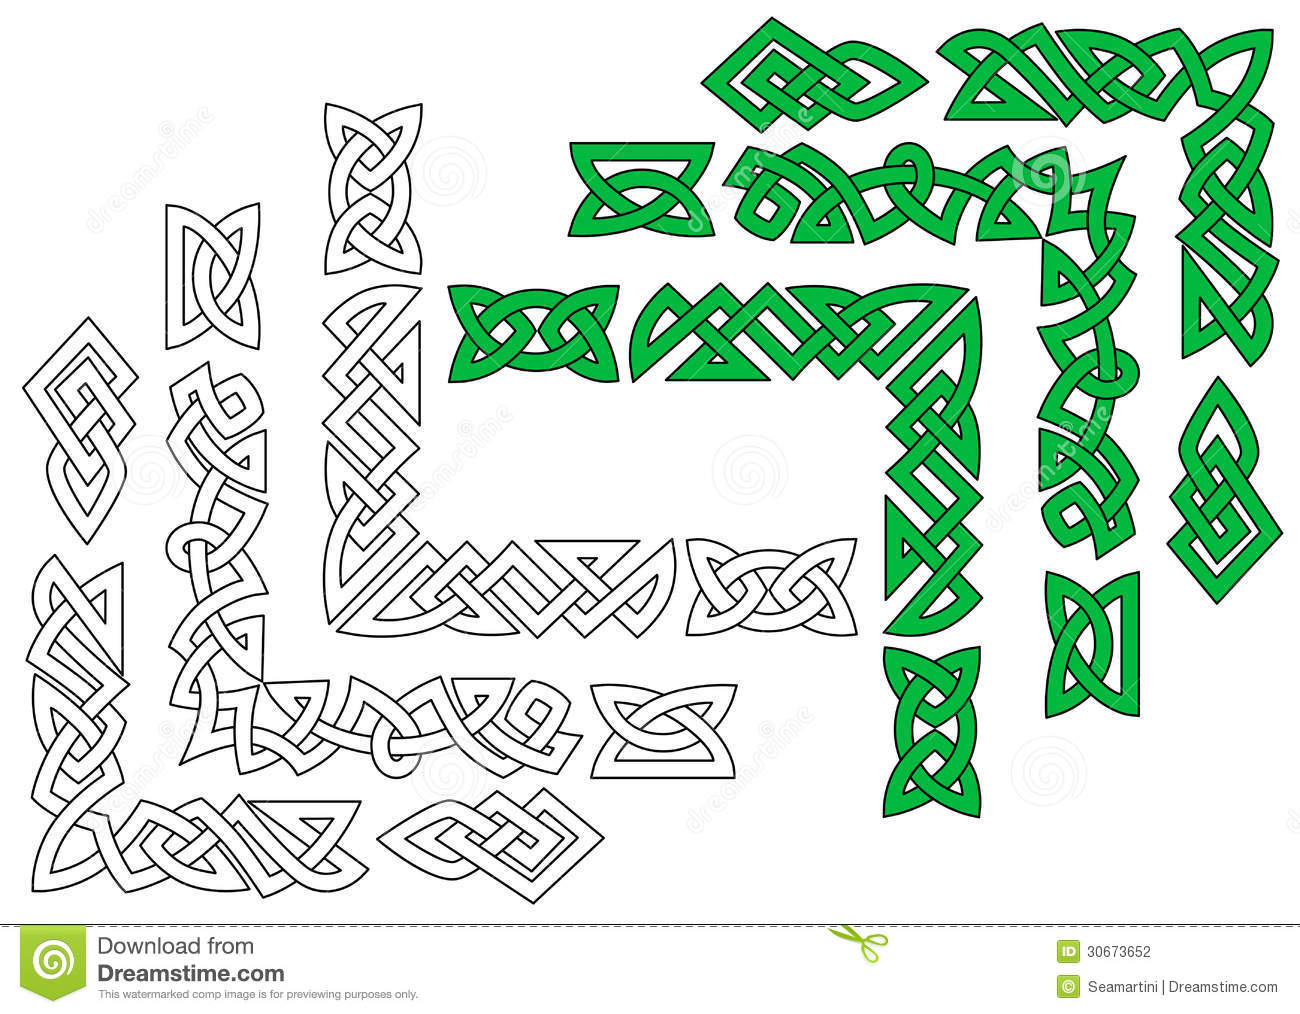 Borders and patterns in celtic ornament style for design and ornate.